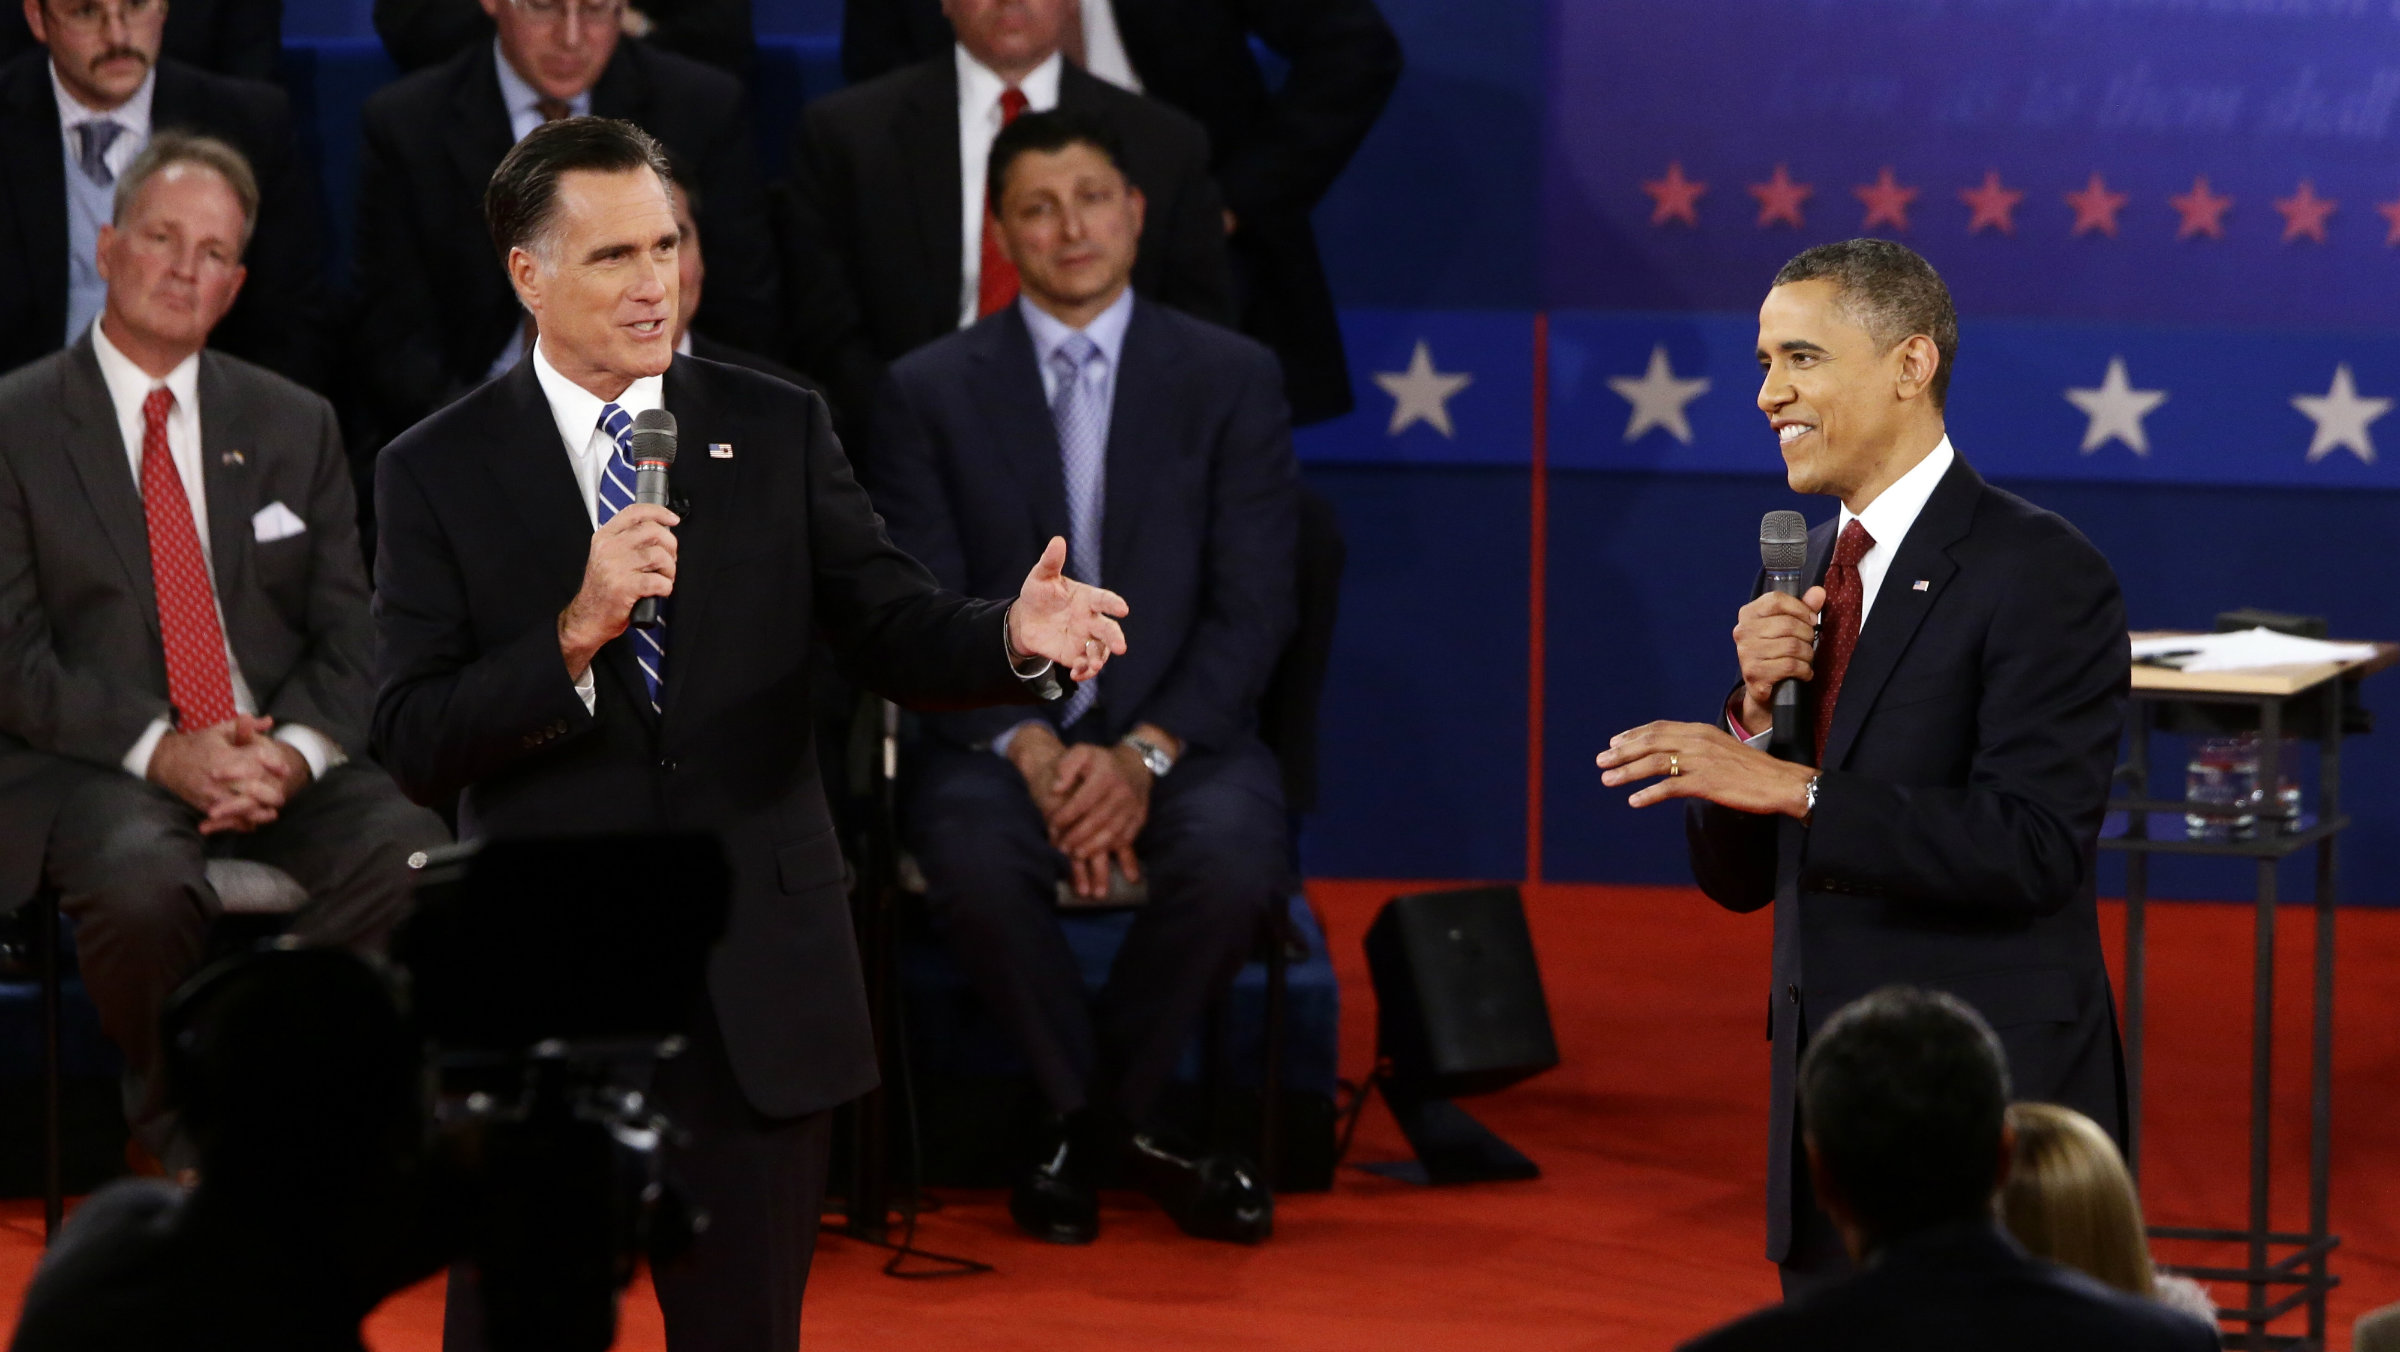 President Obama turned in a better performance in the town-hall format than the first debate.